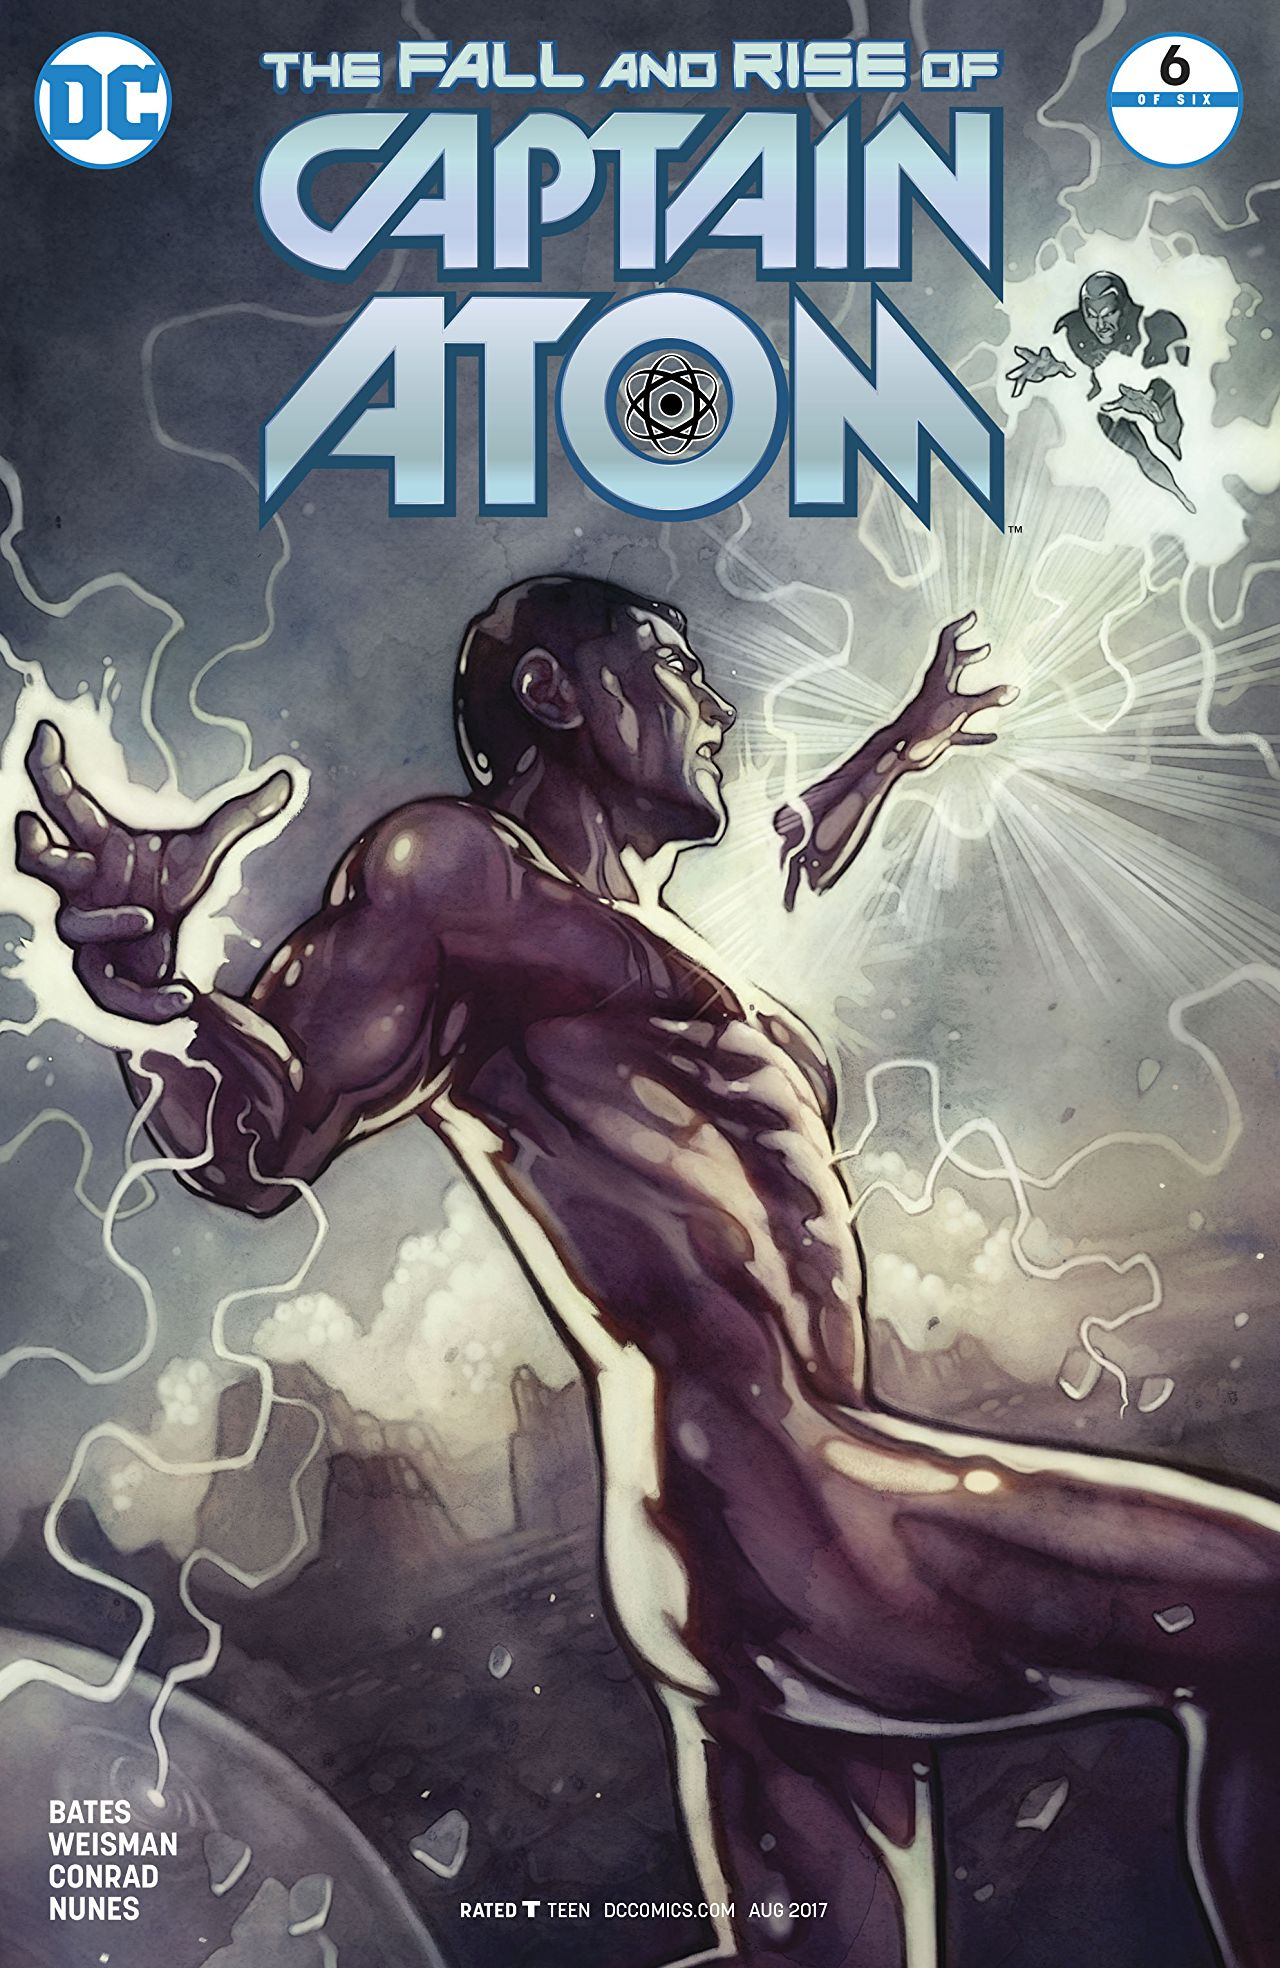 review THE FALL AND RISE OF CAPTAIN ATOM #6